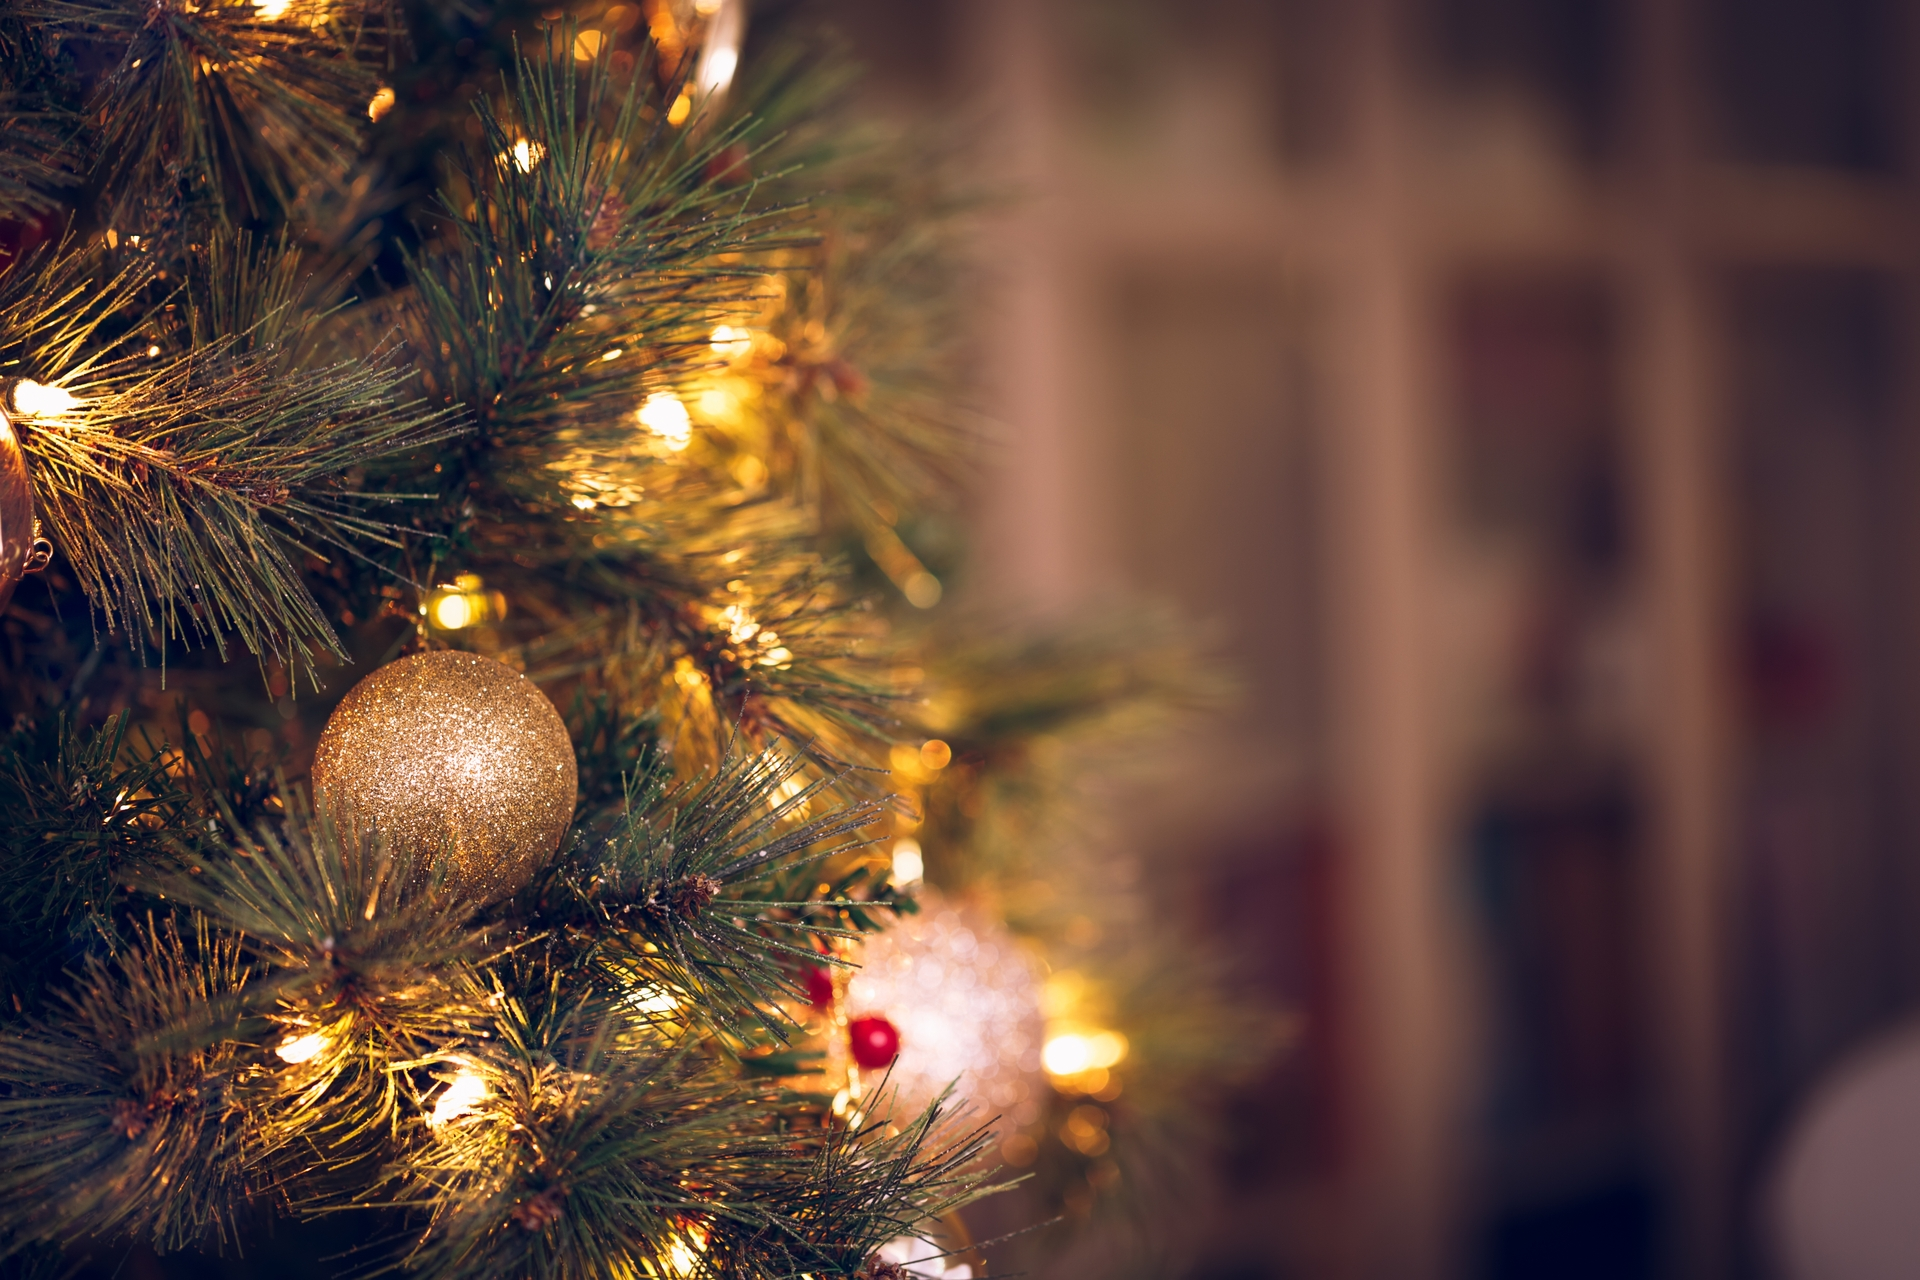 On average, 160 home fires begin with Christmas trees each year, according to the Electrical Safety Foundation International.